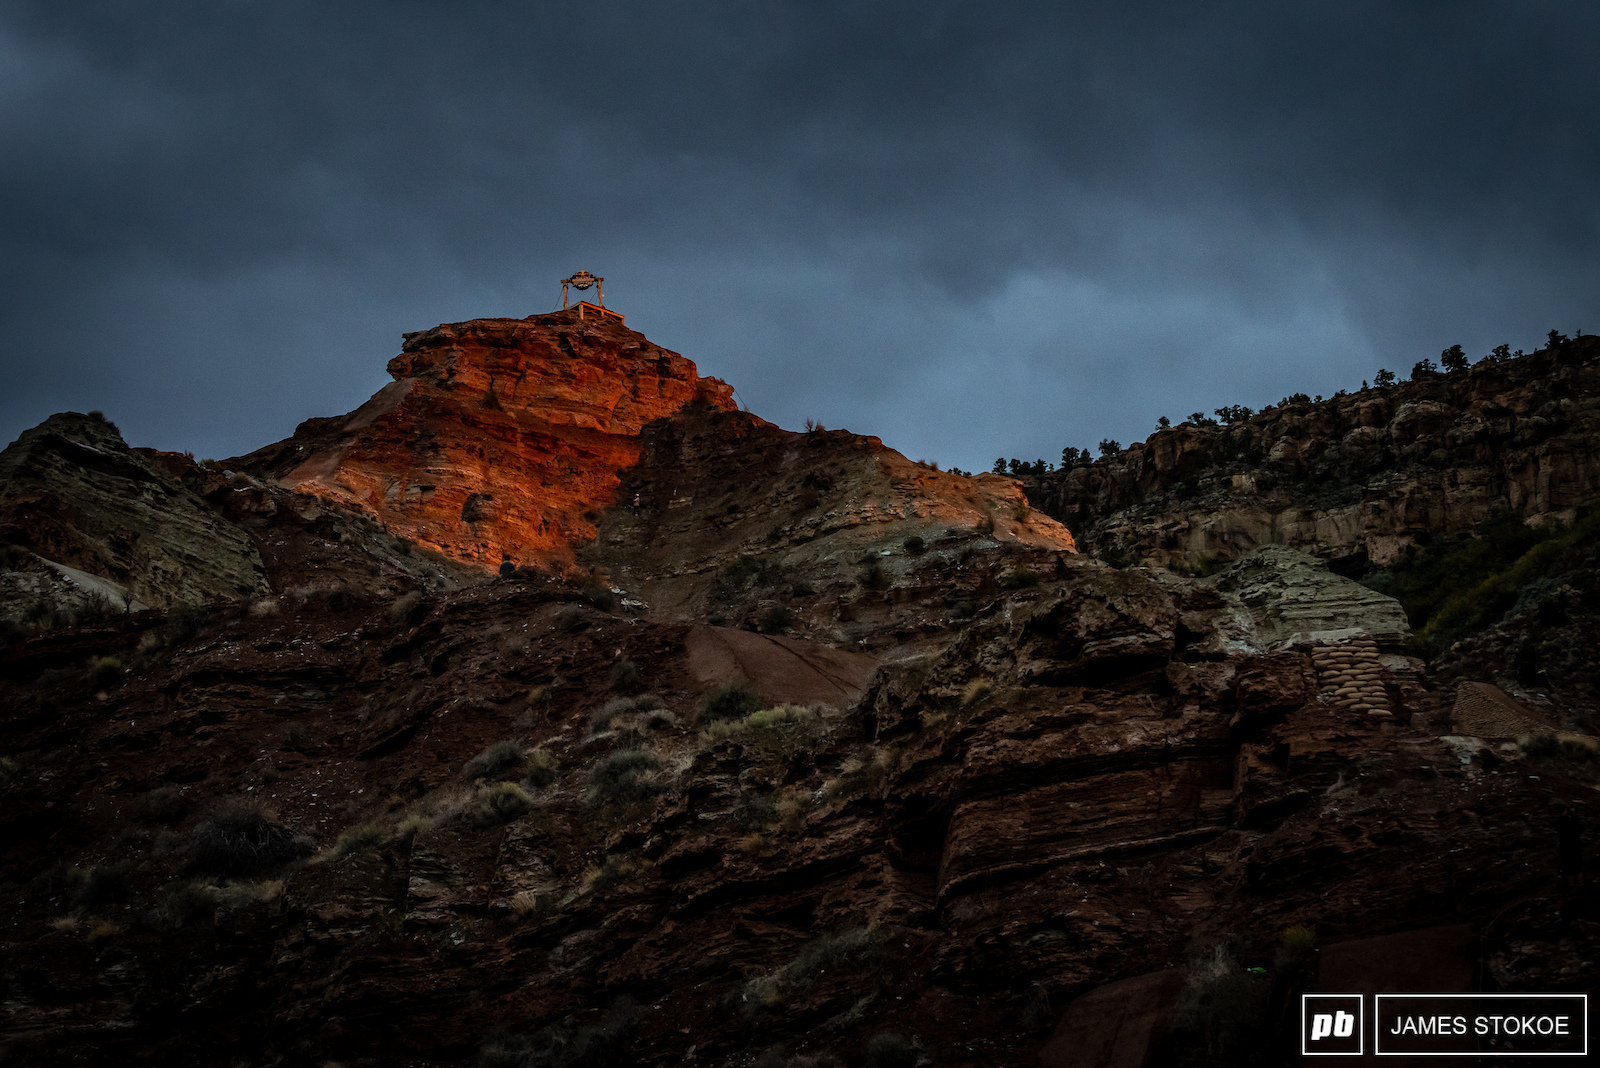 The sun managed to peek through the storm clouds for just a second at sunset to light up the start gate with a glow that makes the red rock pop like no other place.